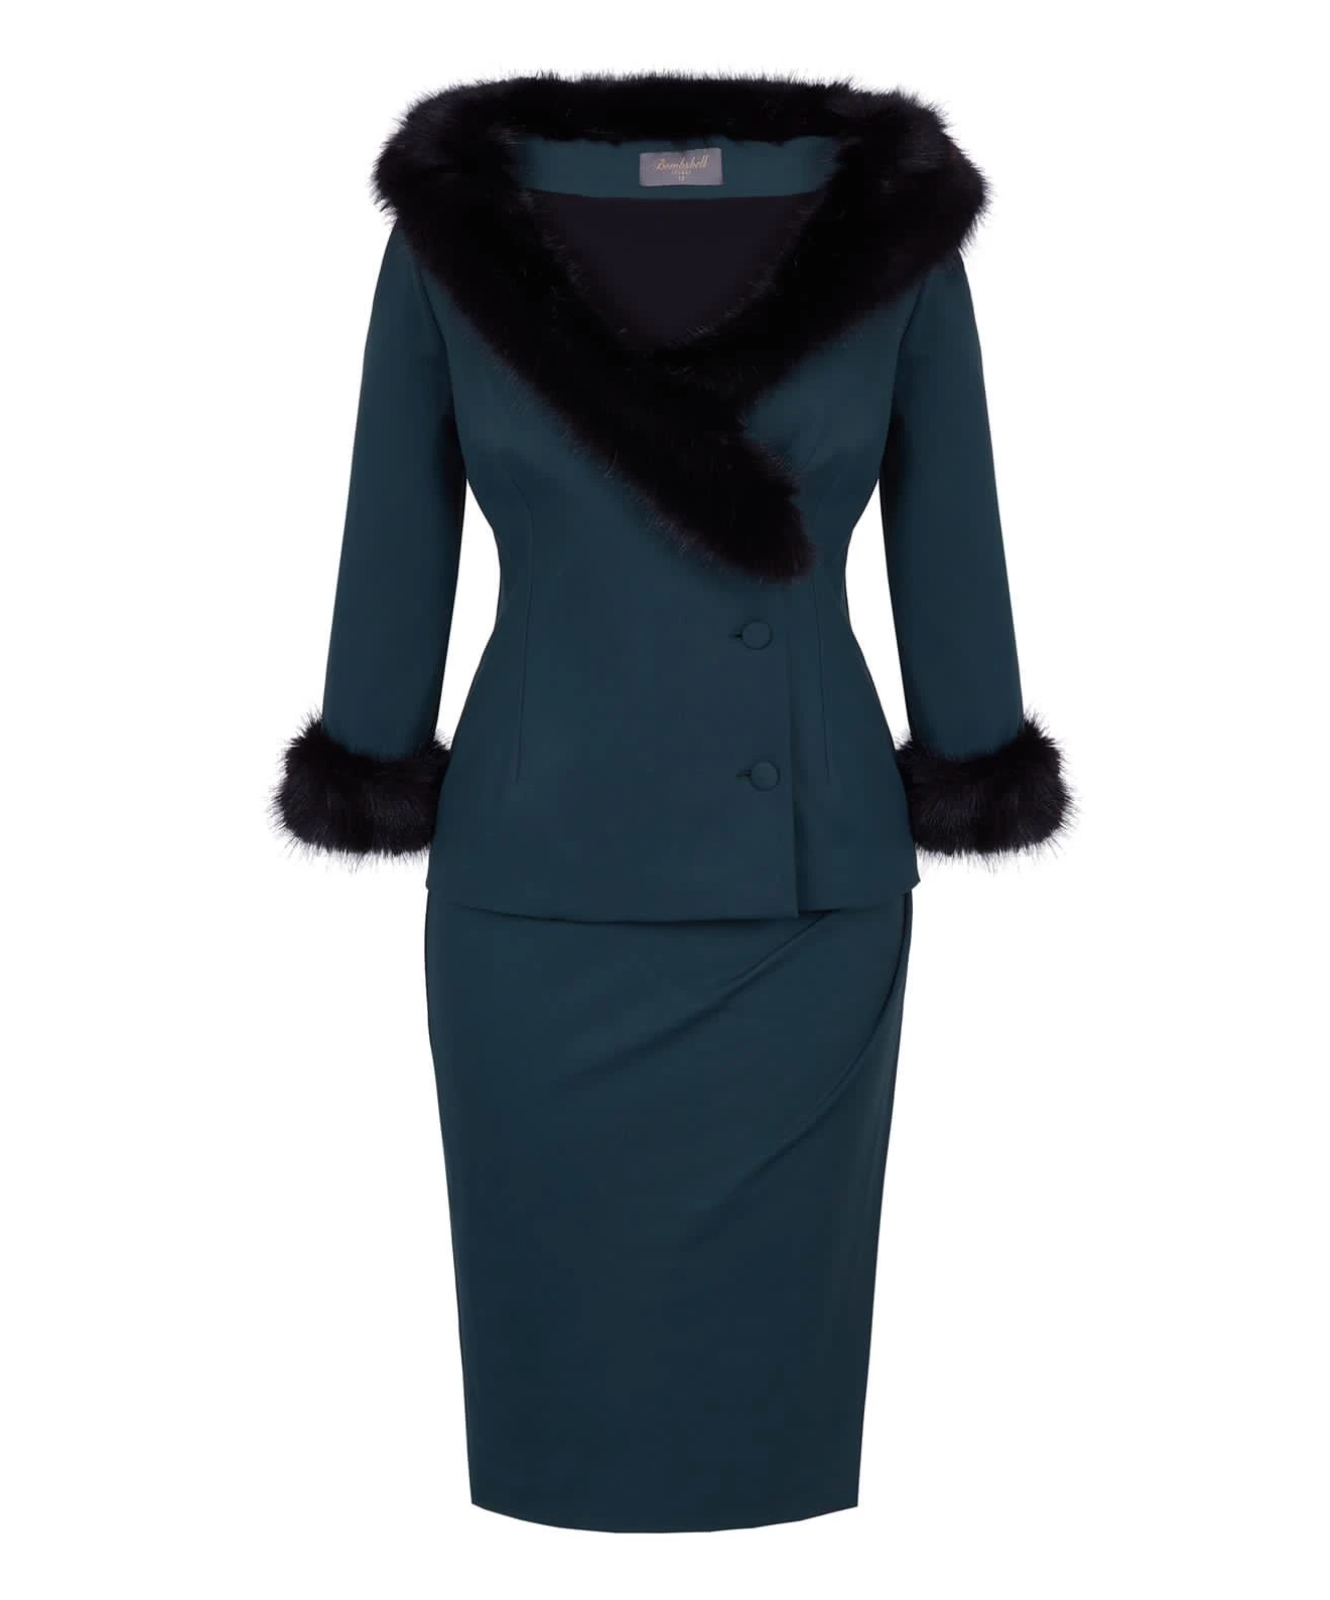 Dark Green Fitted Jacket for a Big Bust